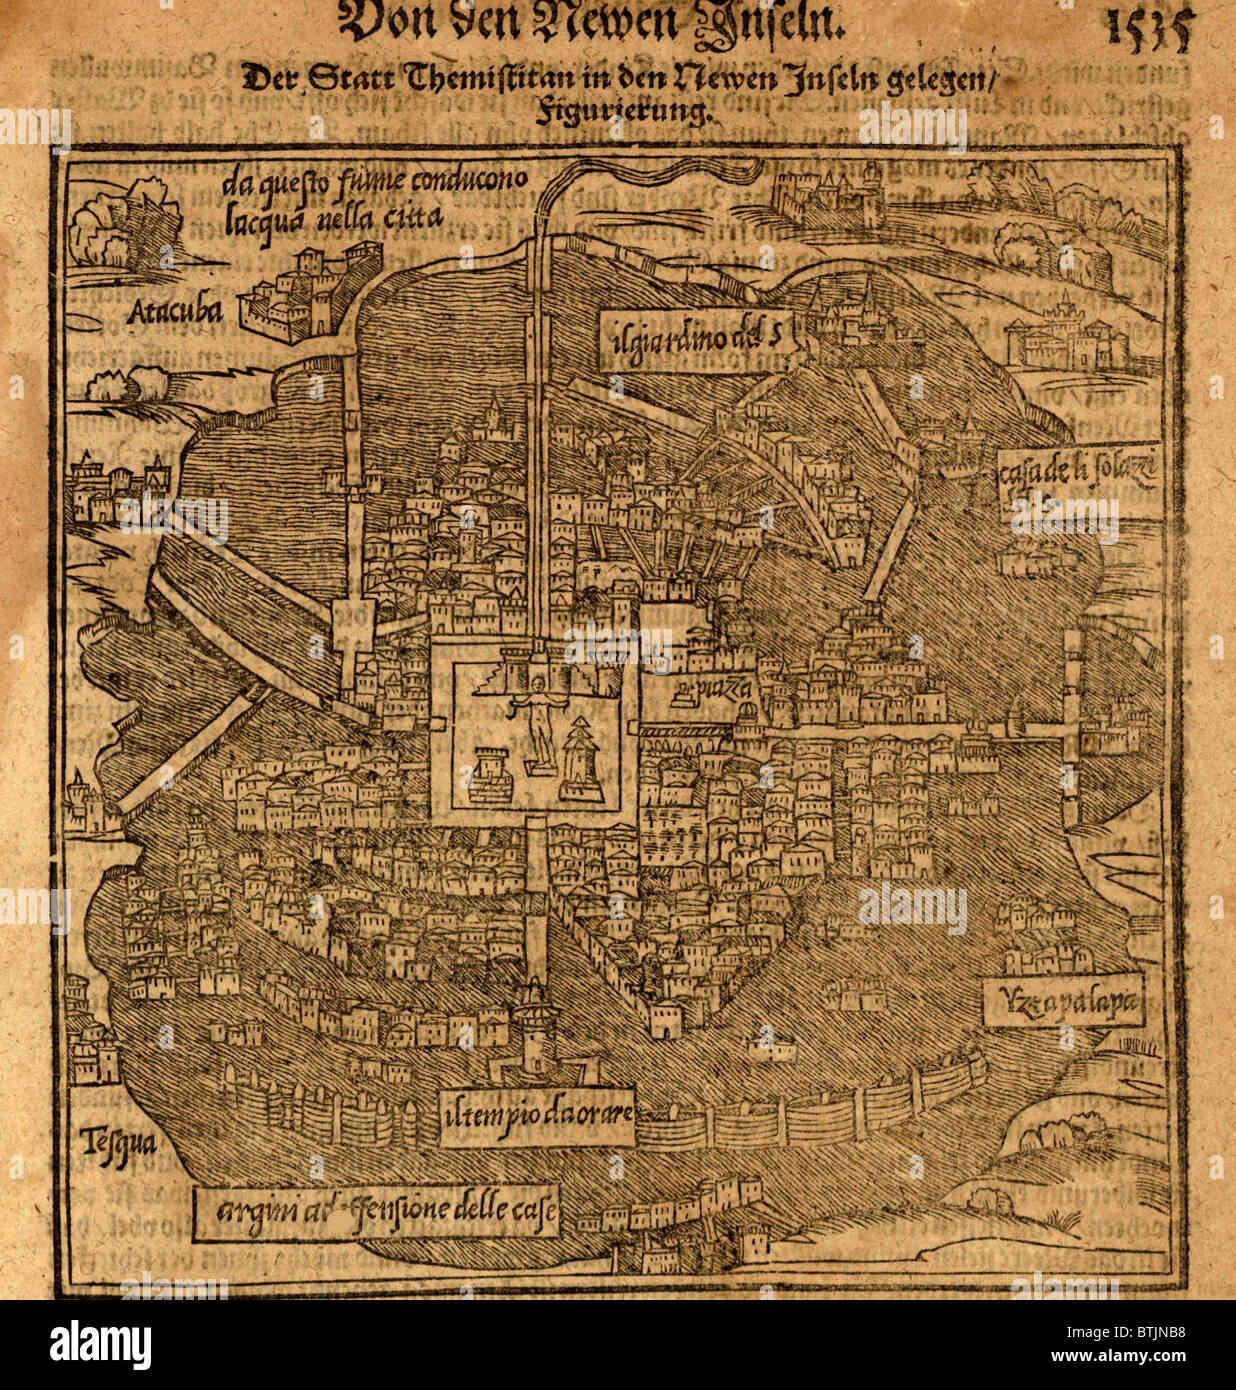 Aztec Capital Tenochtitlan Now Mexico City From A 1597 Map By